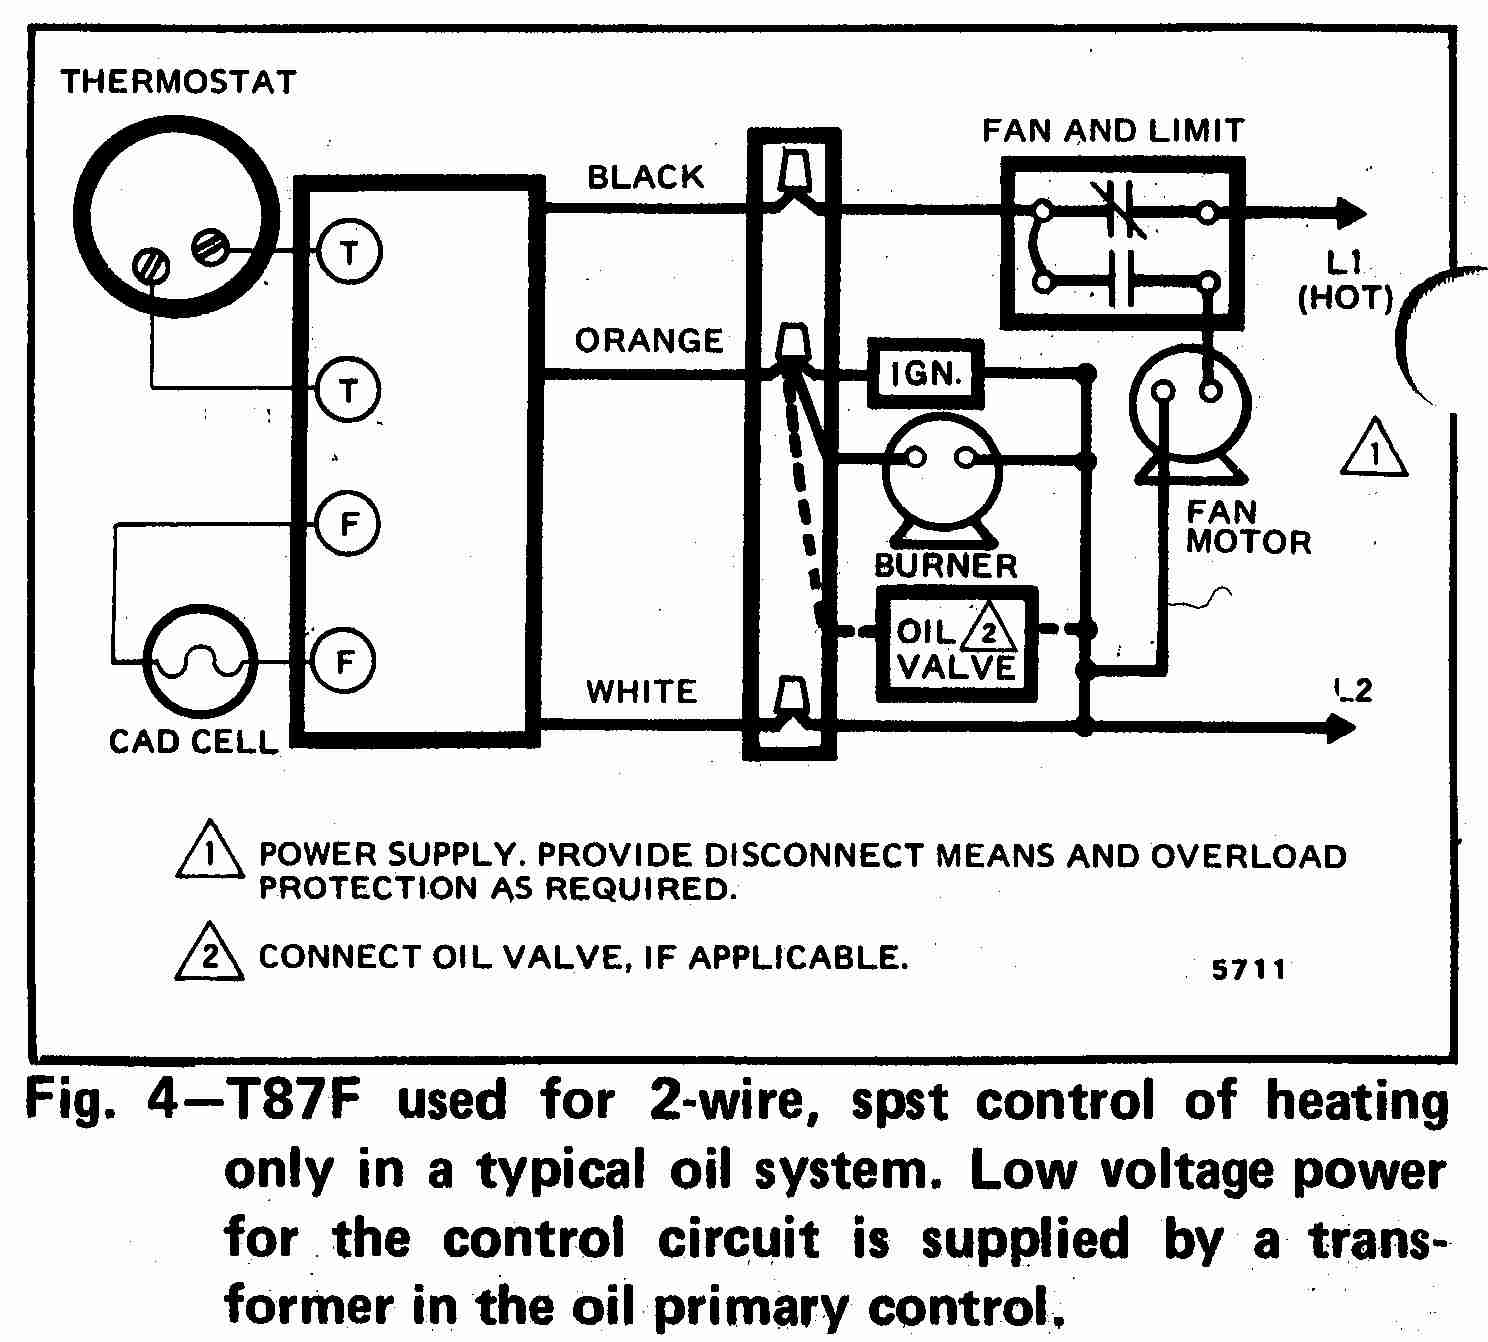 TT_T87F_0002_2W_DJF room thermostat wiring diagrams for hvac systems imit boiler thermostat wiring diagram at bakdesigns.co